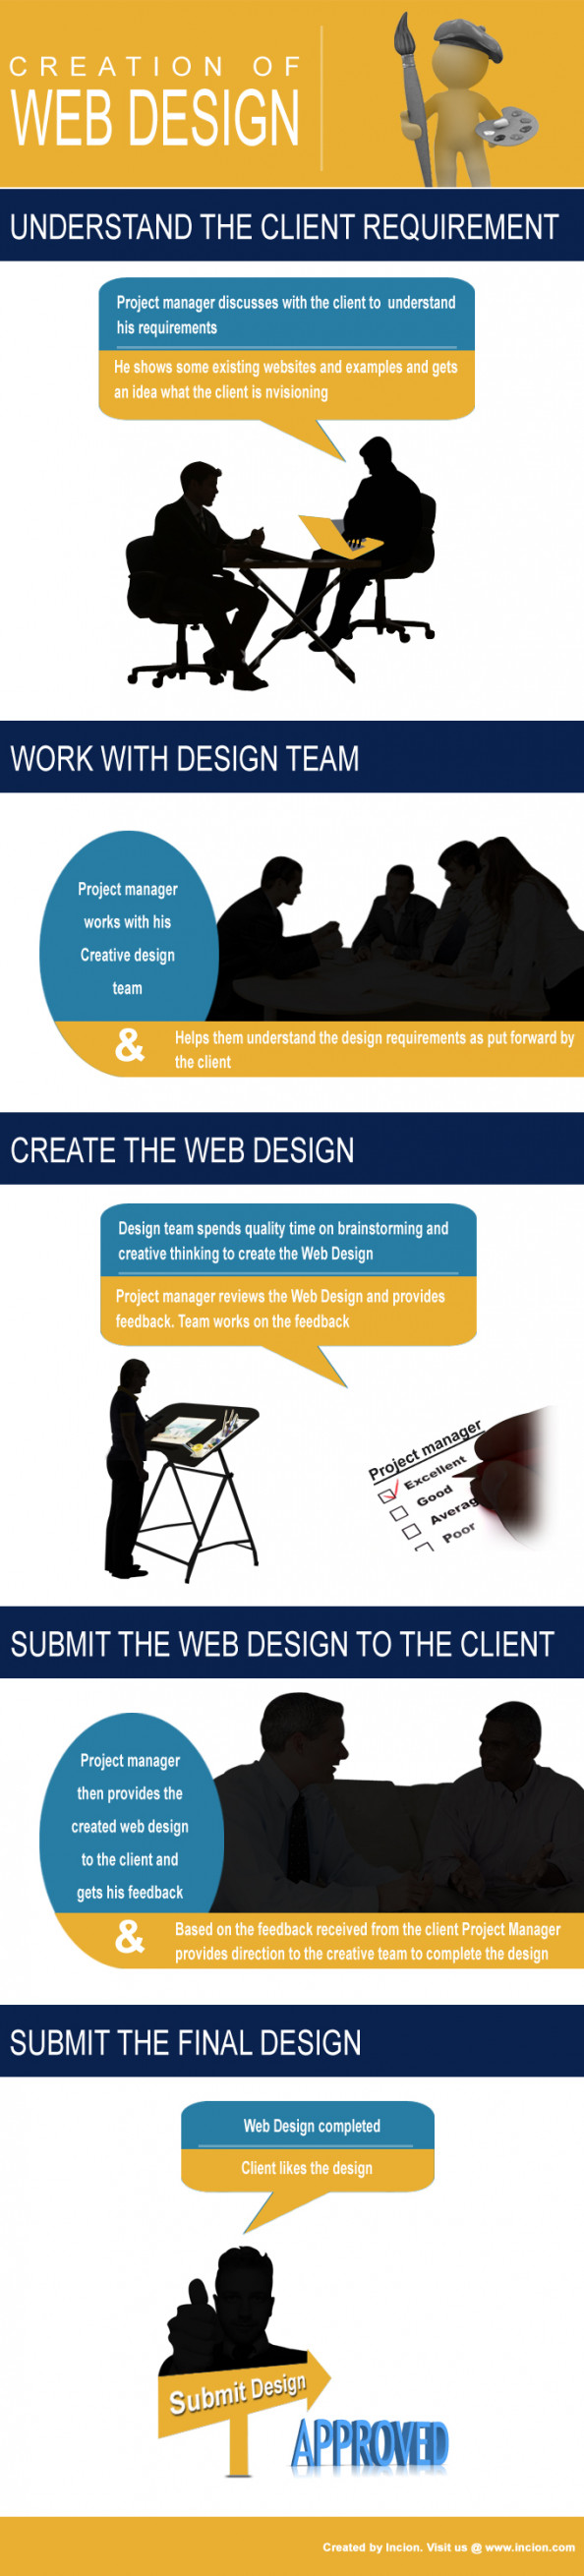 Web Design Process Infographic